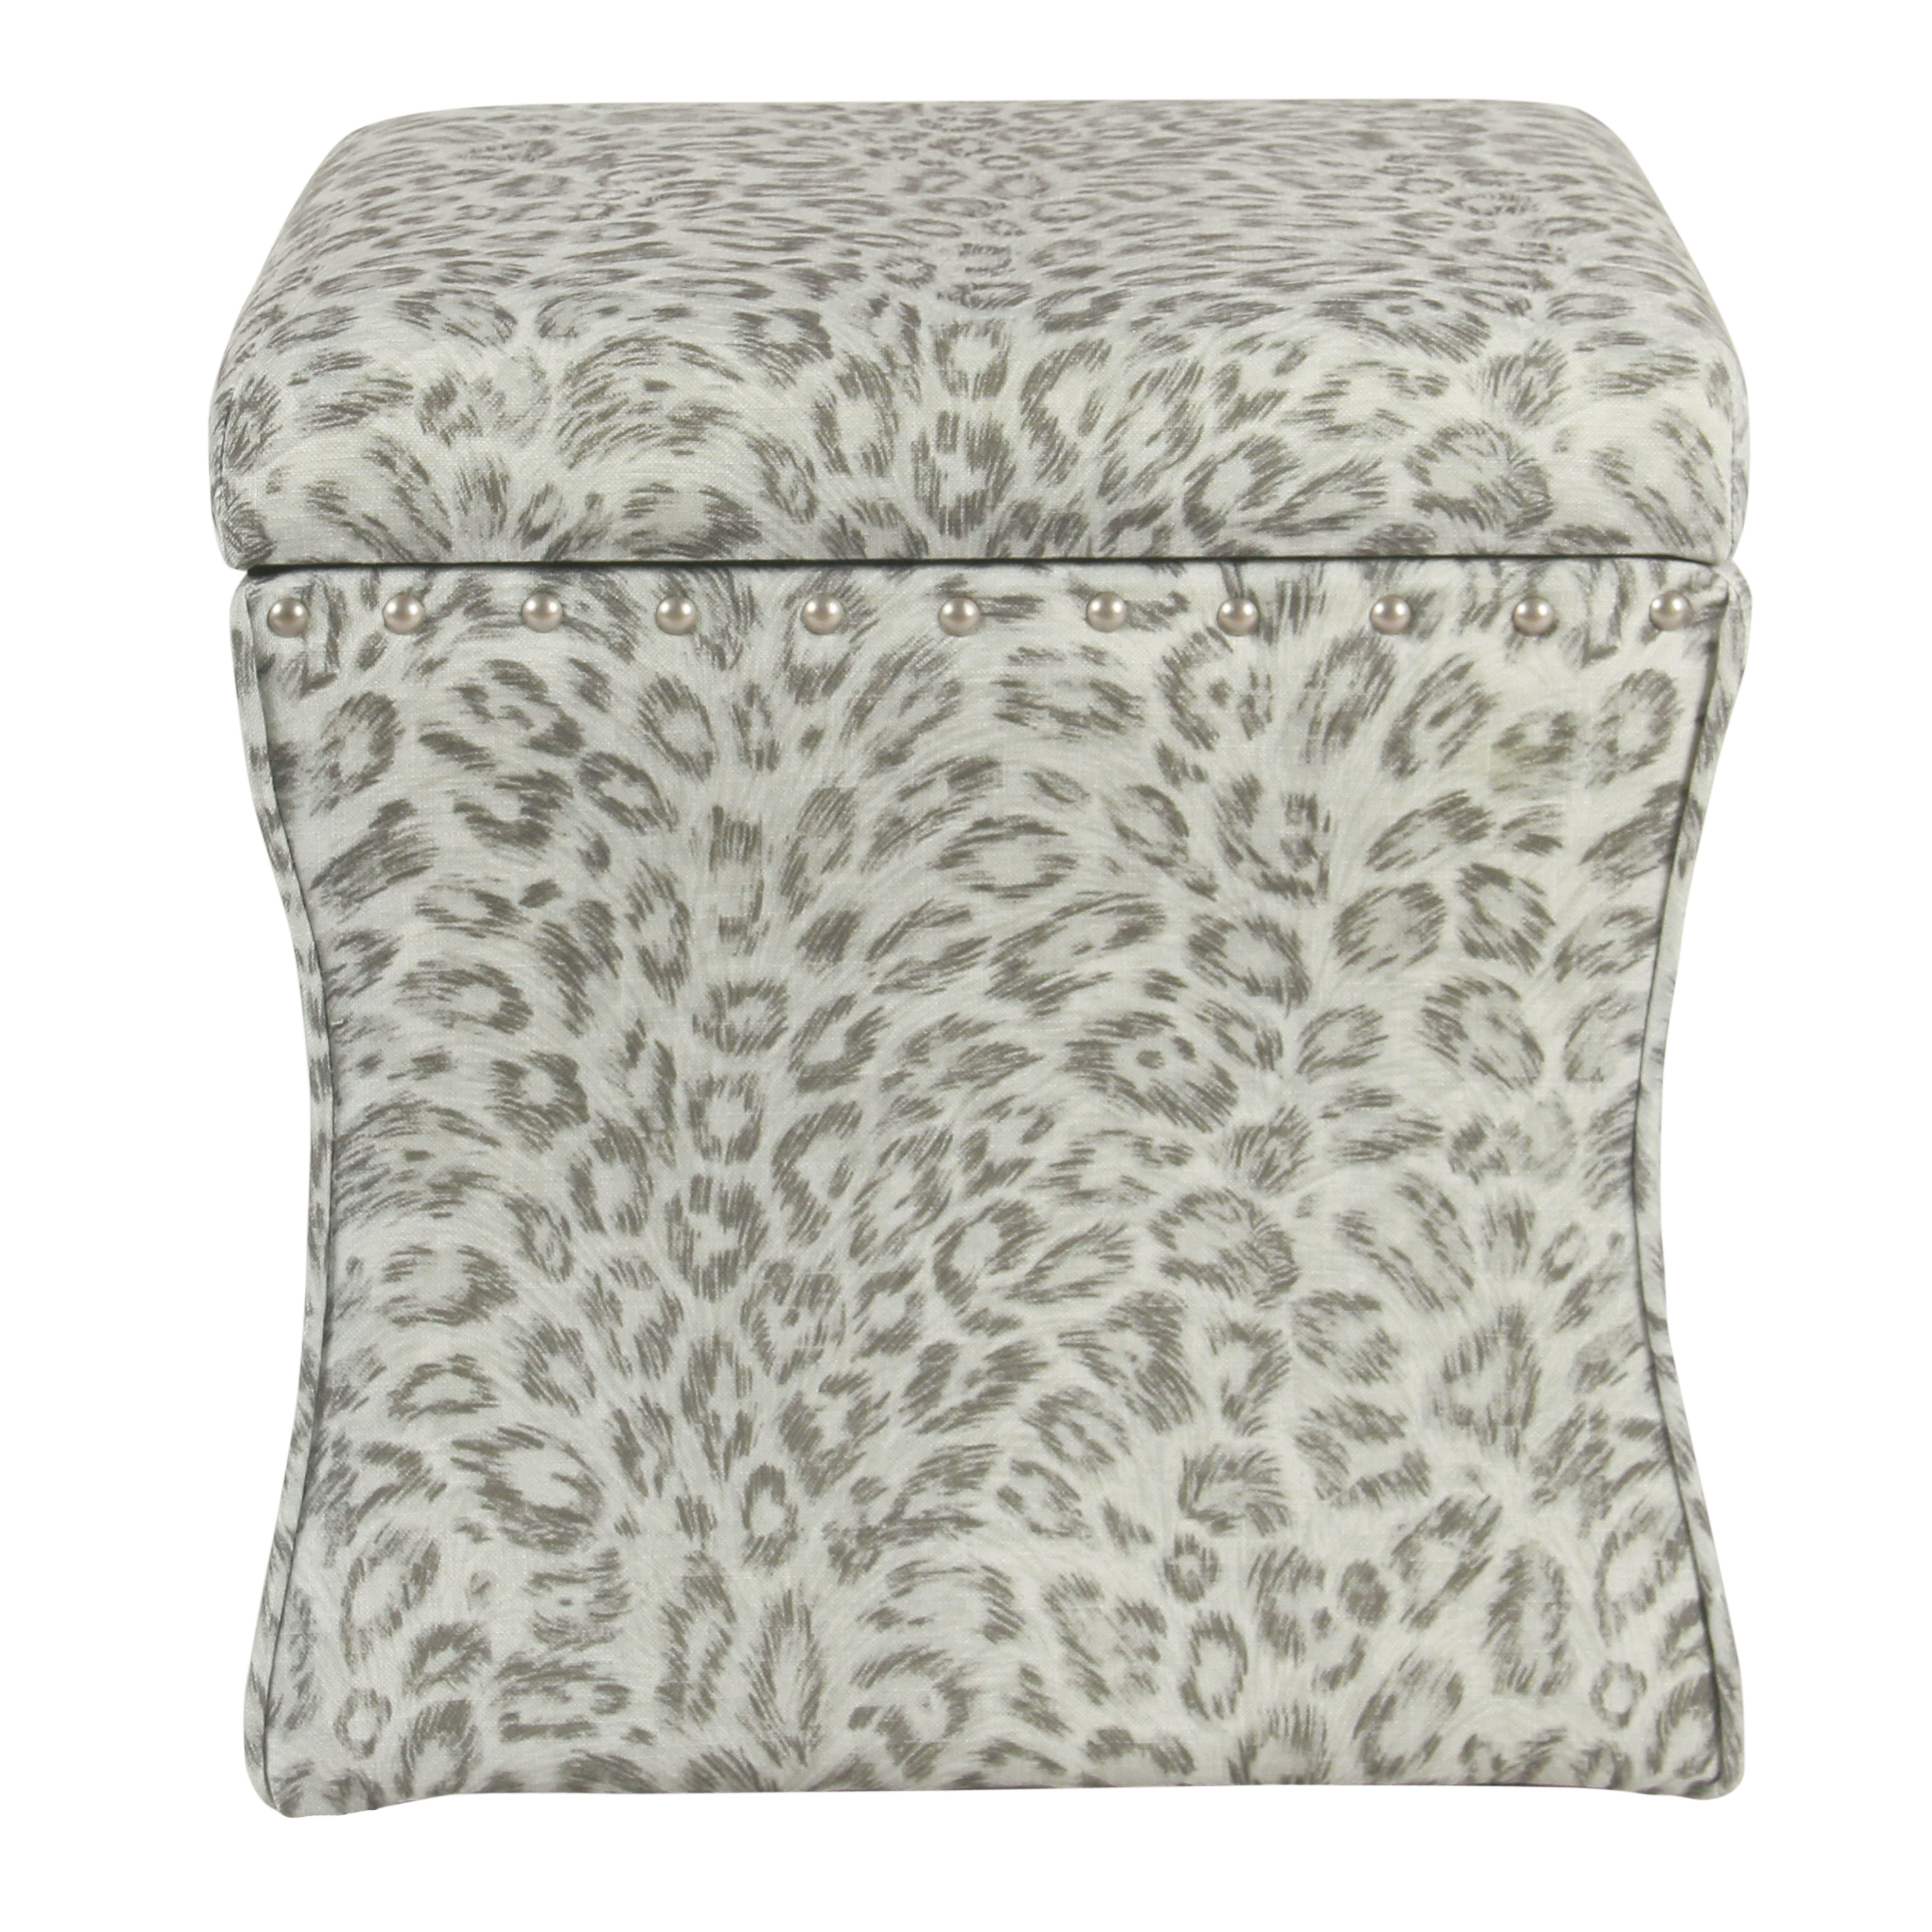 HomePop Cinch Storage Ottoman with Nailheads, Multiple Colors